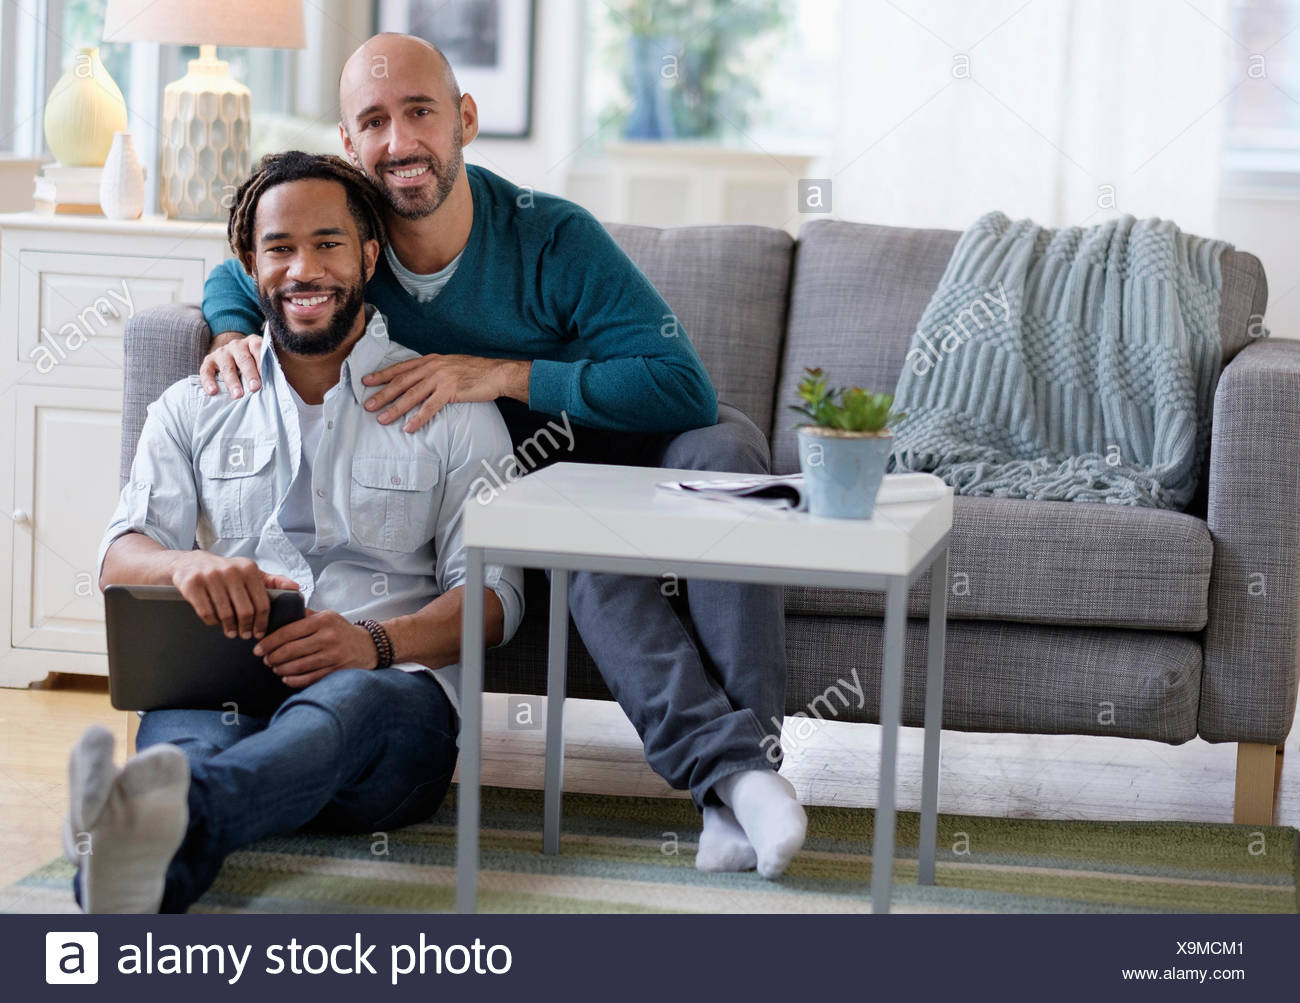 Man massaging boyfriend by sofa in living room - Stock Image